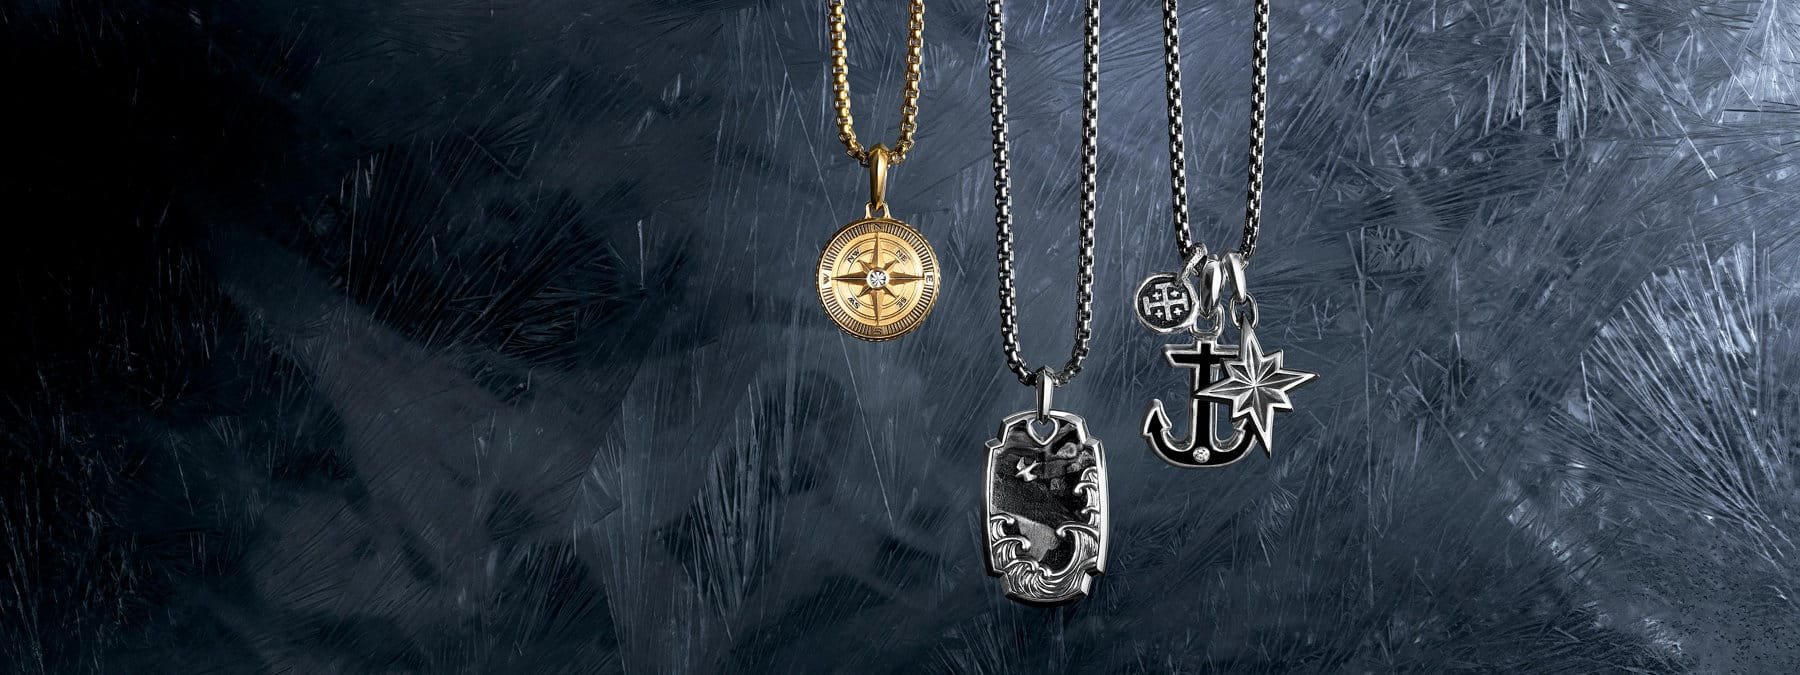 A color photo shows three David Yurman men's box-chain necklaces in 18K yellow gold or sterling silver arranged in a row atop a dark, scratched icy surface dusted with snowflakes. Each necklace is strung with one or three David Yurman men's amulets crafted from 18K yellow gold or sterling silver. From left is a Maritime compass with a single white diamond, a Waves tag with forged carbon, a Shipwreck coin amulet, a Maritime anchor with black onyx and a single white diamond and a Maritime North Star amulet.